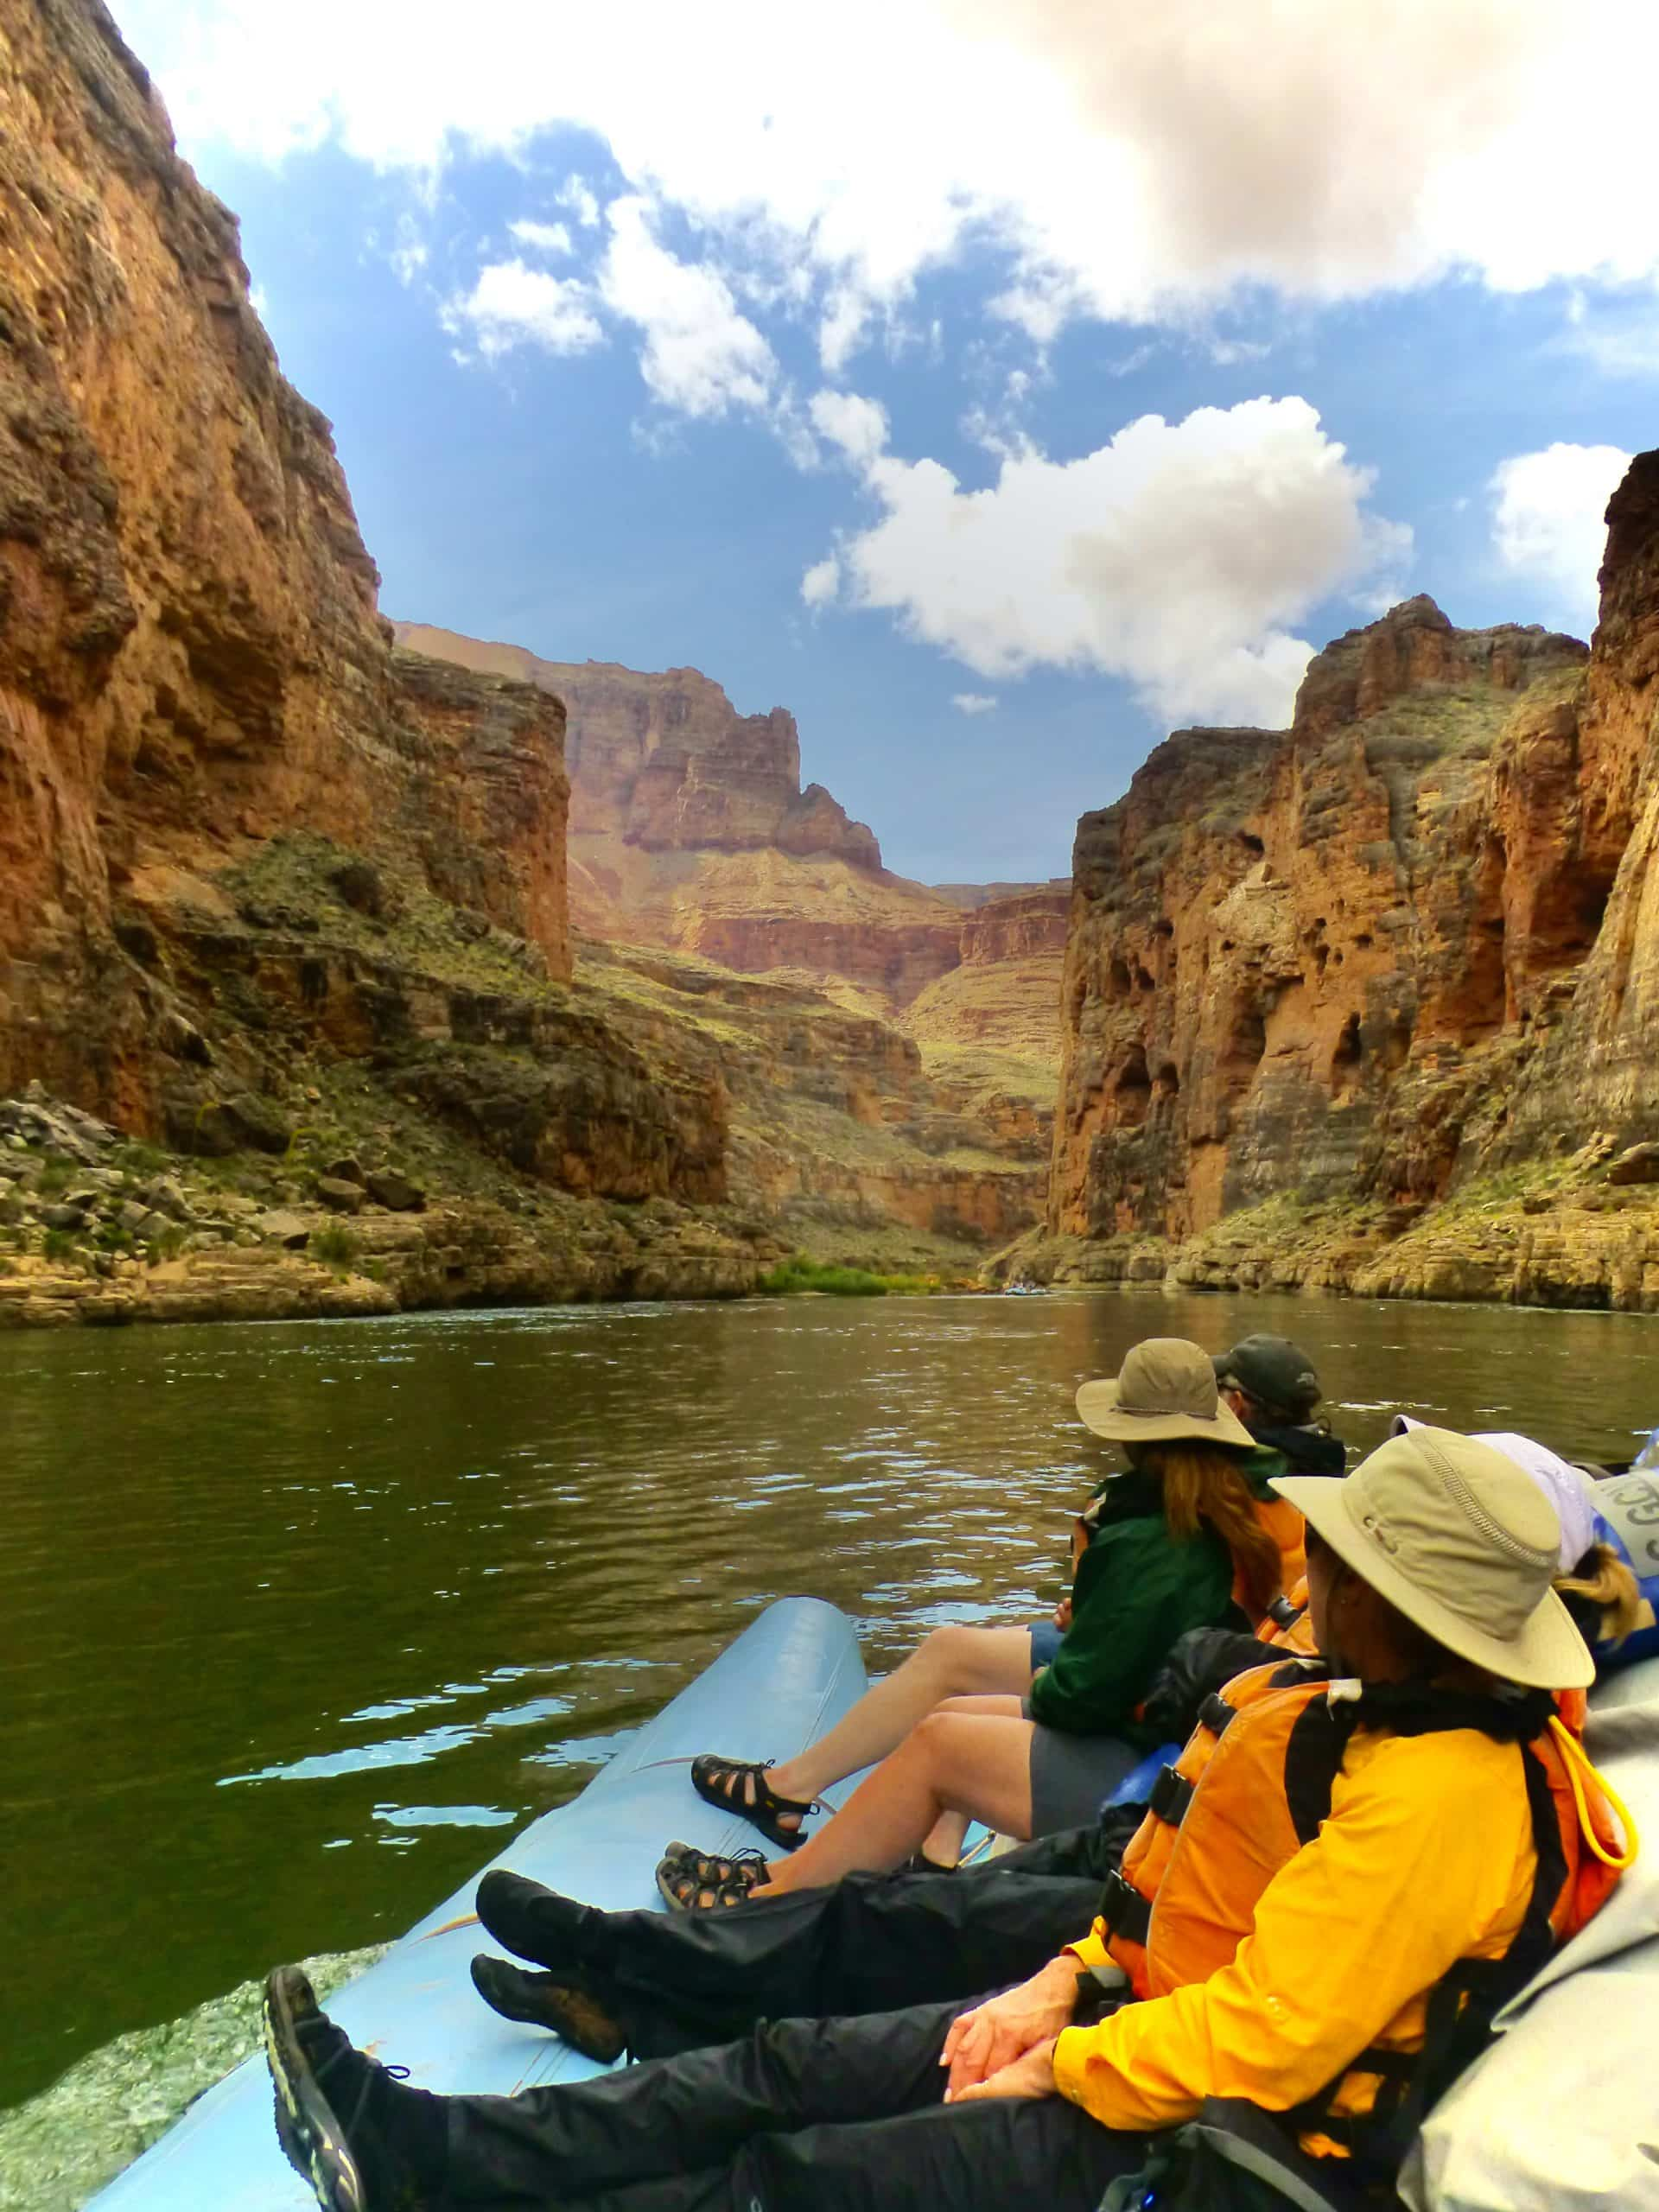 White water rafting on the Colorado river